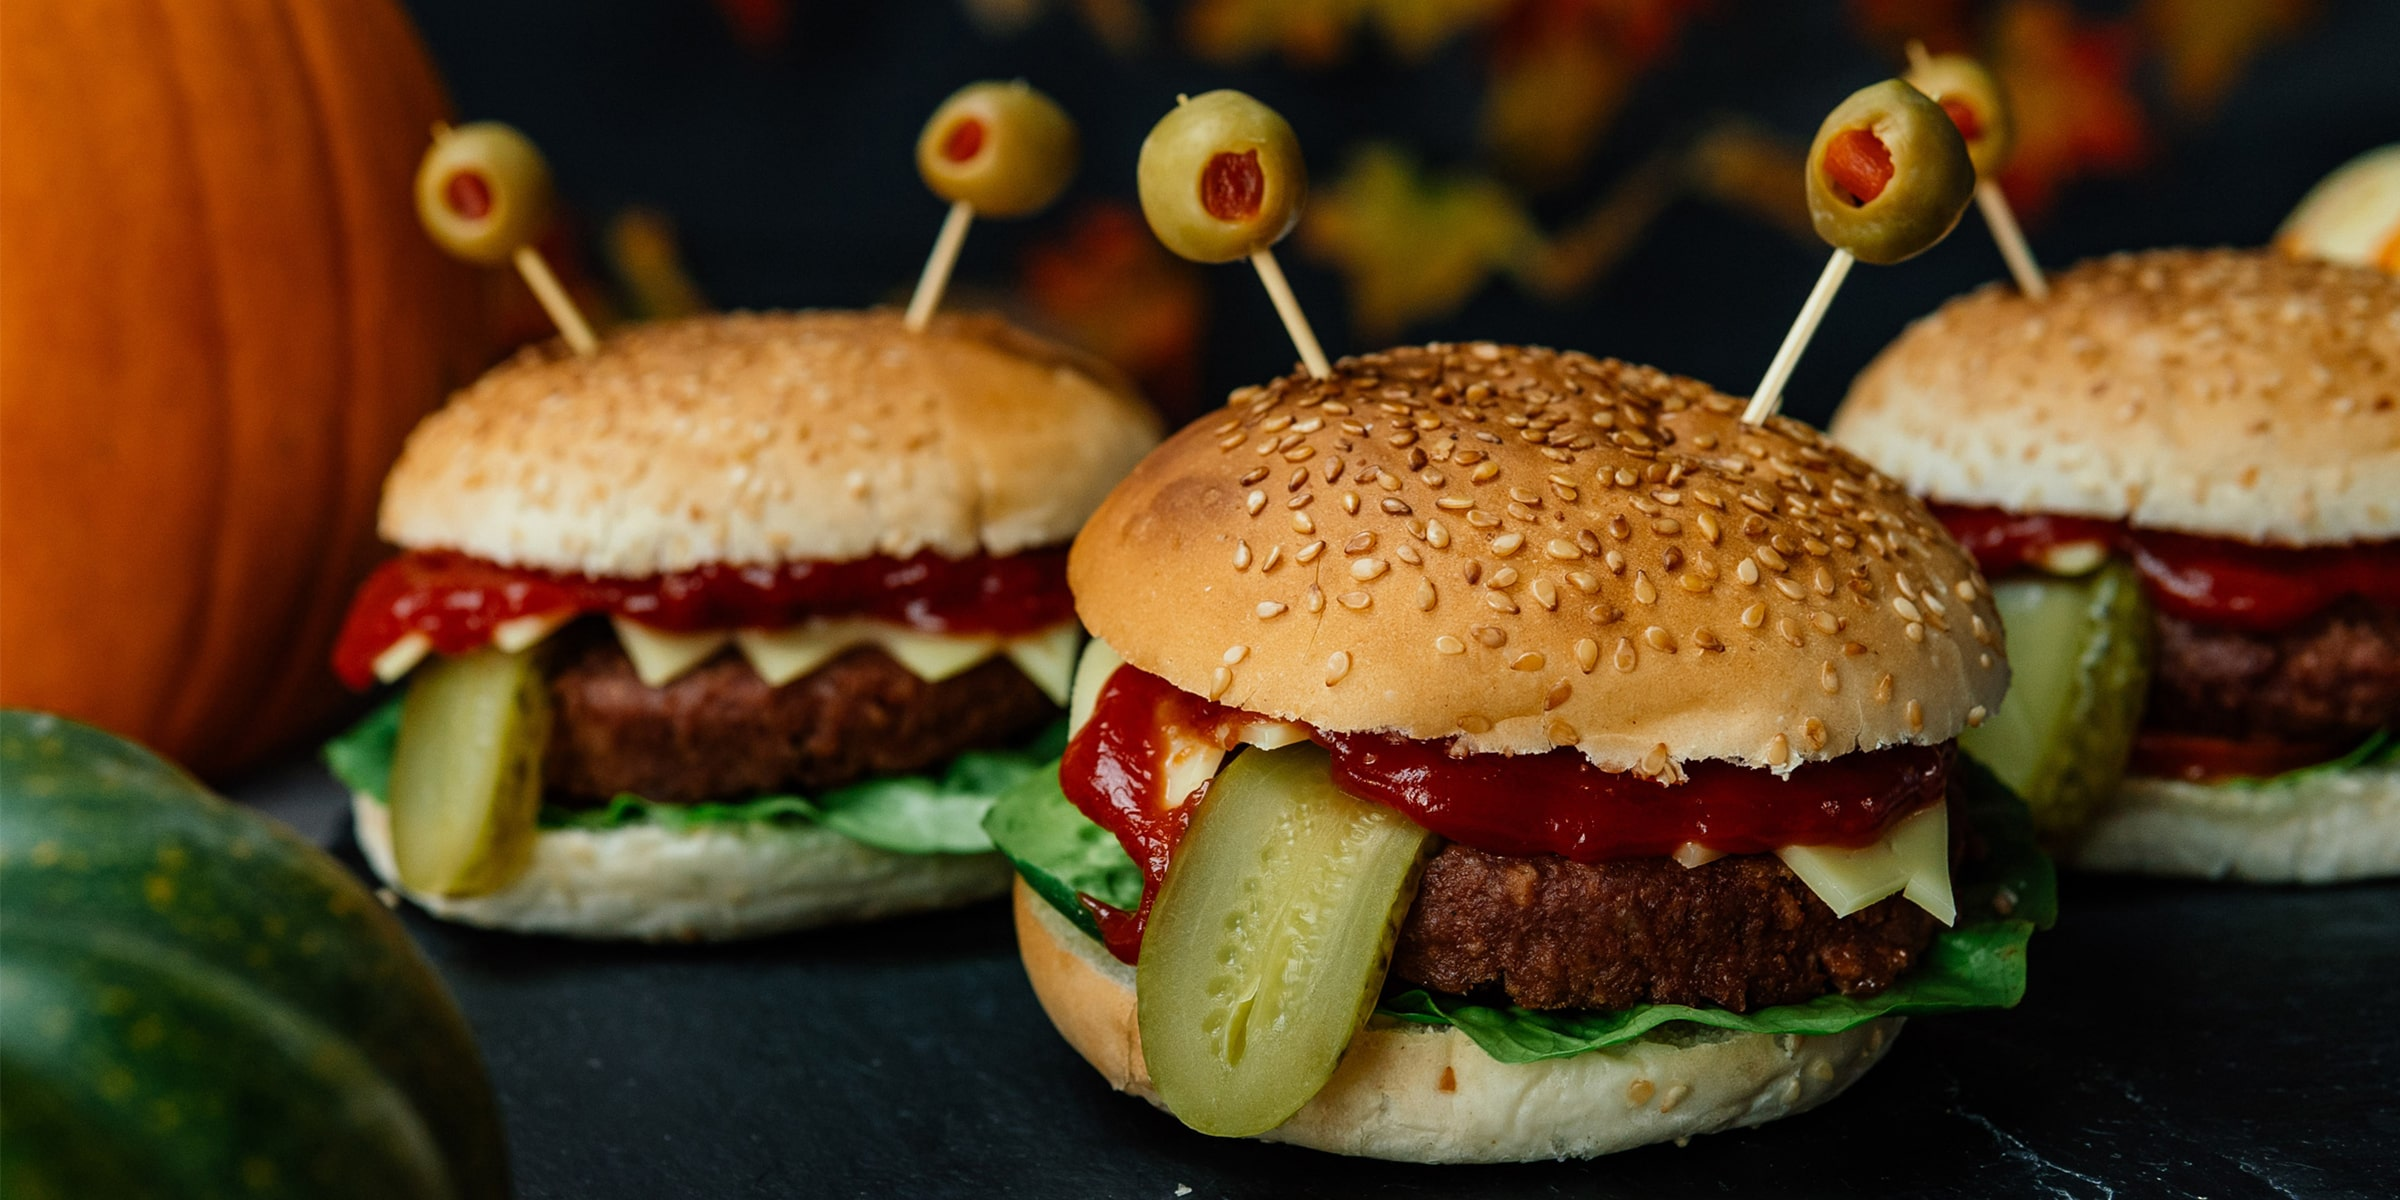 Meat-free burger in a bun with gherkin 'tongue' sticking out and olives on cocktail sticks stuck into the top bread bun for eyes